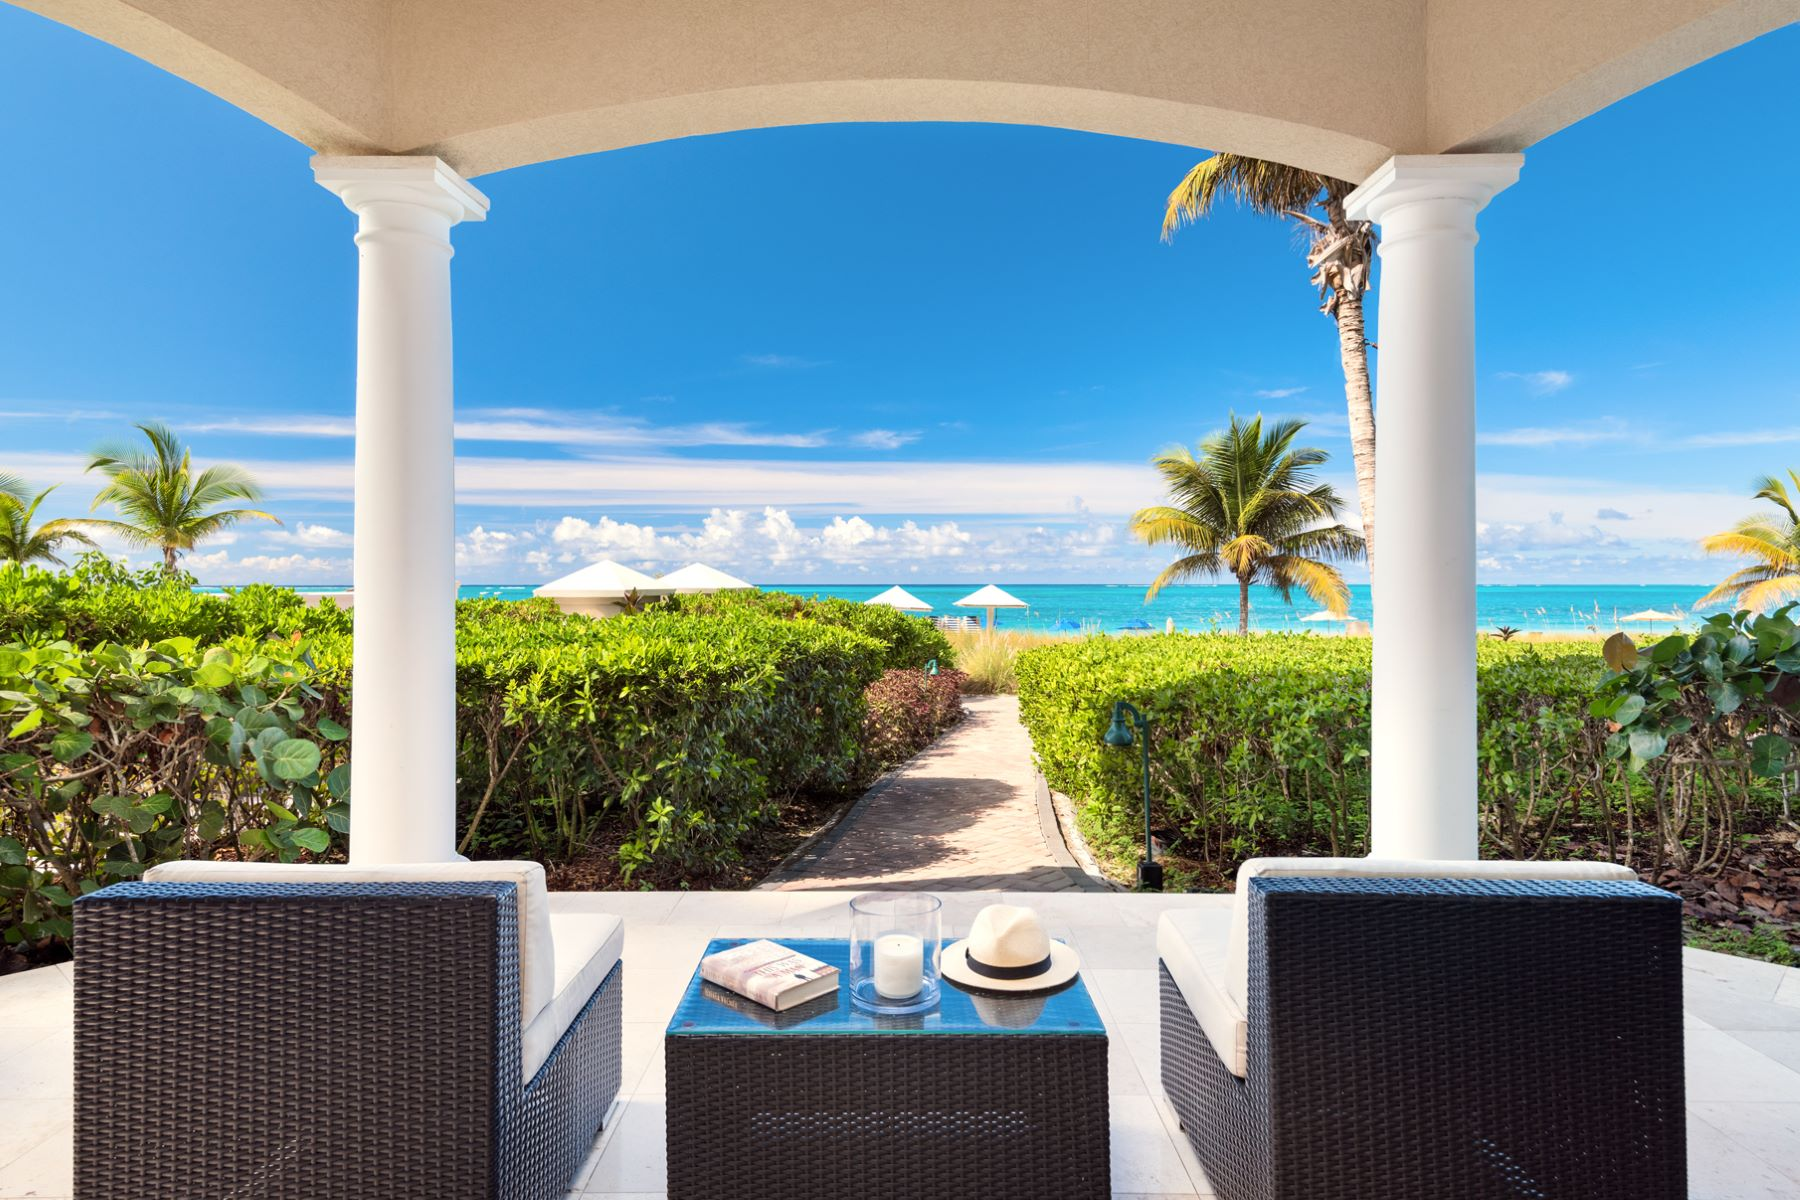 Condominium for Sale at The Pinnacle Suite 107 Beachfront The Pinnacle 107 Grace Bay, Providenciales TCIBWI Turks And Caicos Islands